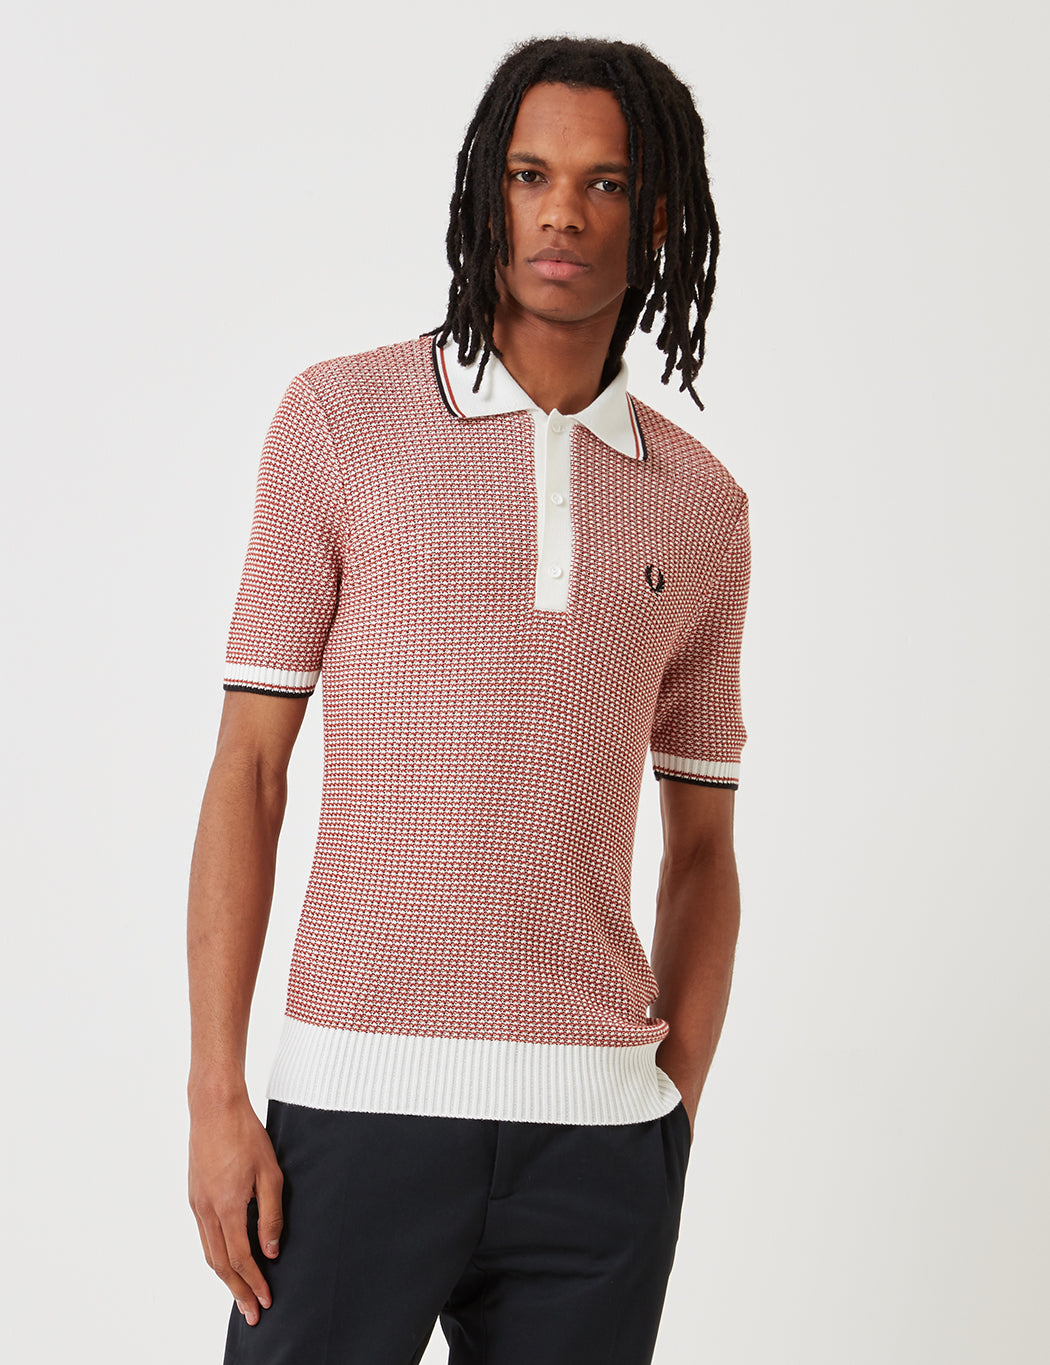 7a4b939e Fred Perry Re-issues Two Colour Texture Knit Shirt in Snow/Paprika